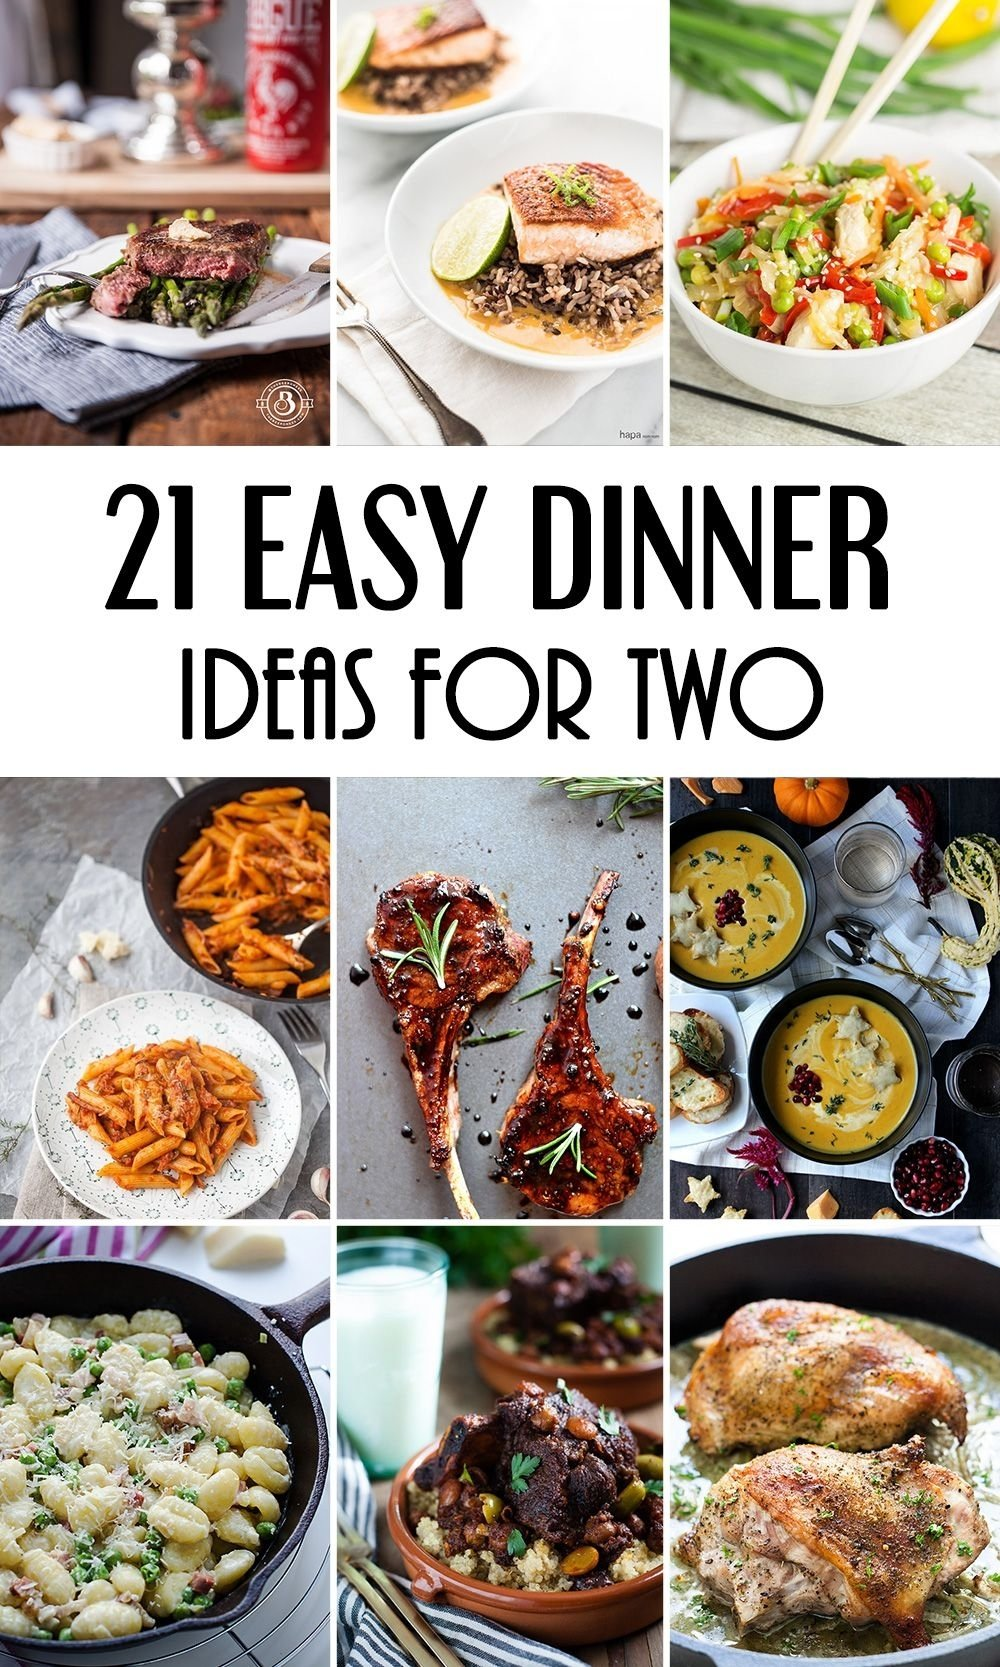 10 Elegant Easy Dinner Ideas For Two 21 easy dinner ideas for two that will impress your significant 2021